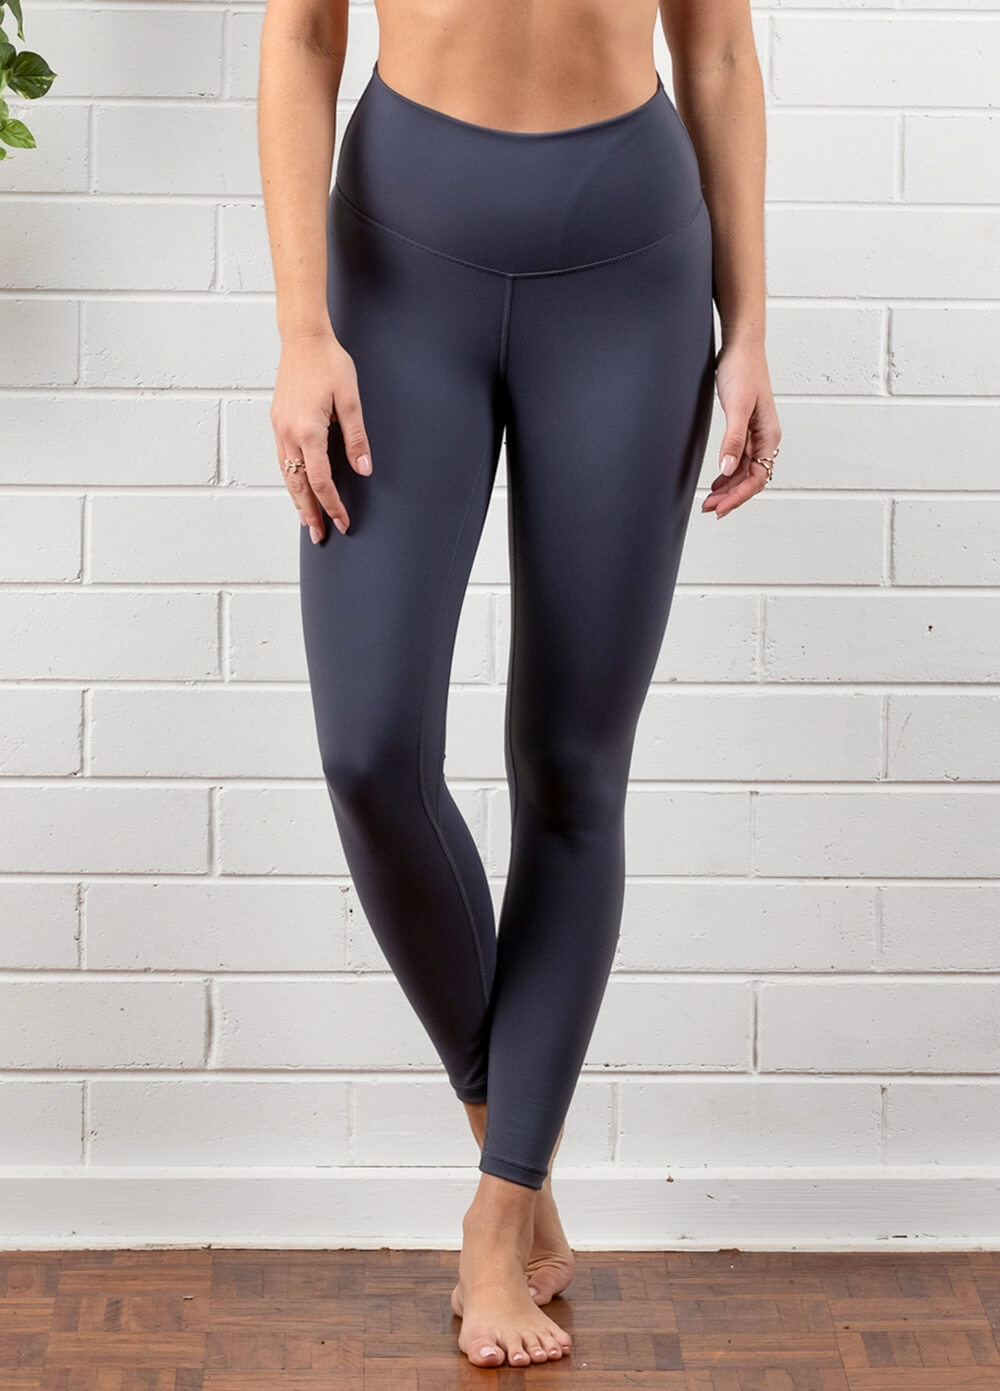 Queen Bee - Ivy Everyday Post Maternity Legging in Carbon